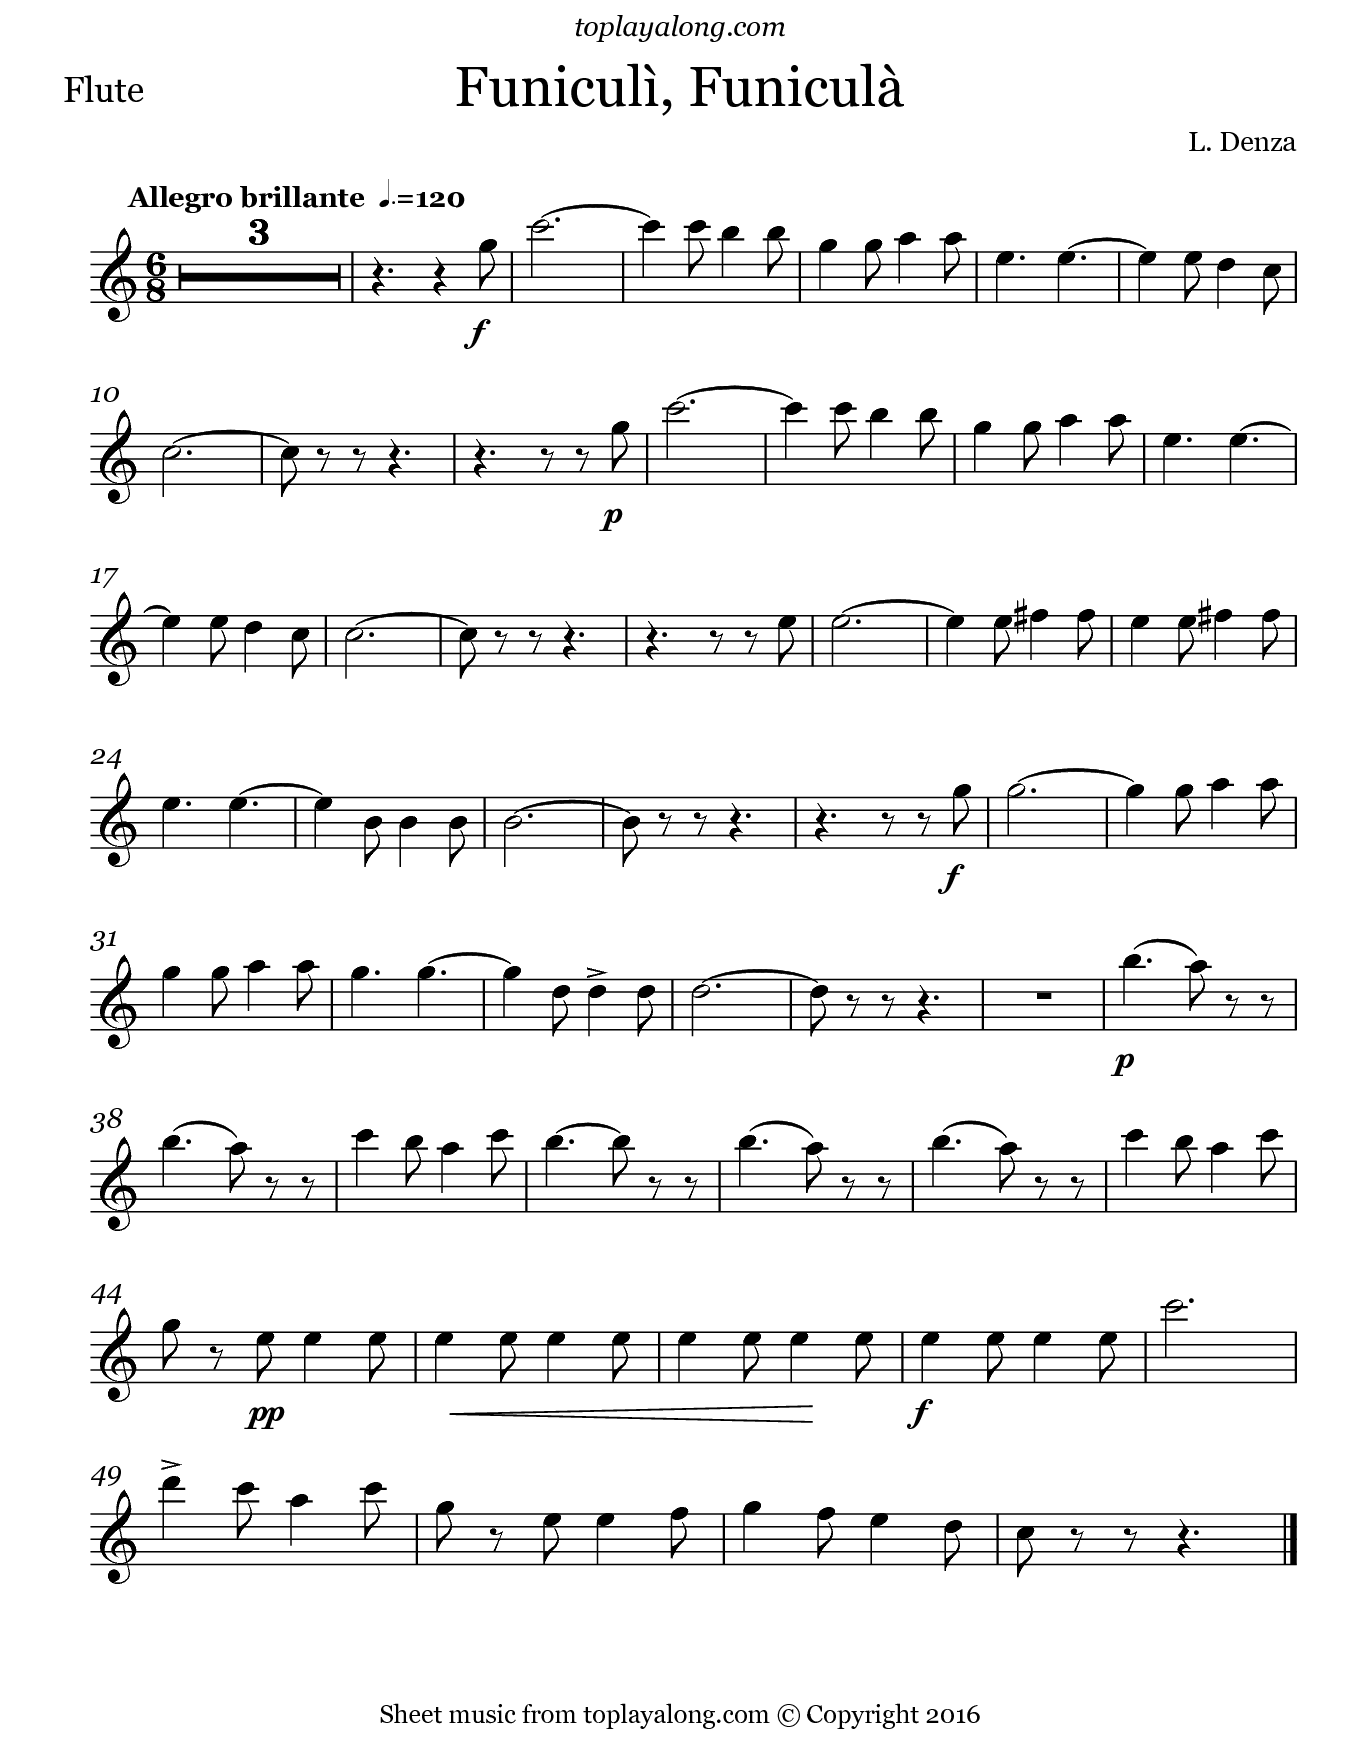 Funiculì, Funiculà by Denza. Sheet music for Flute, page 1.